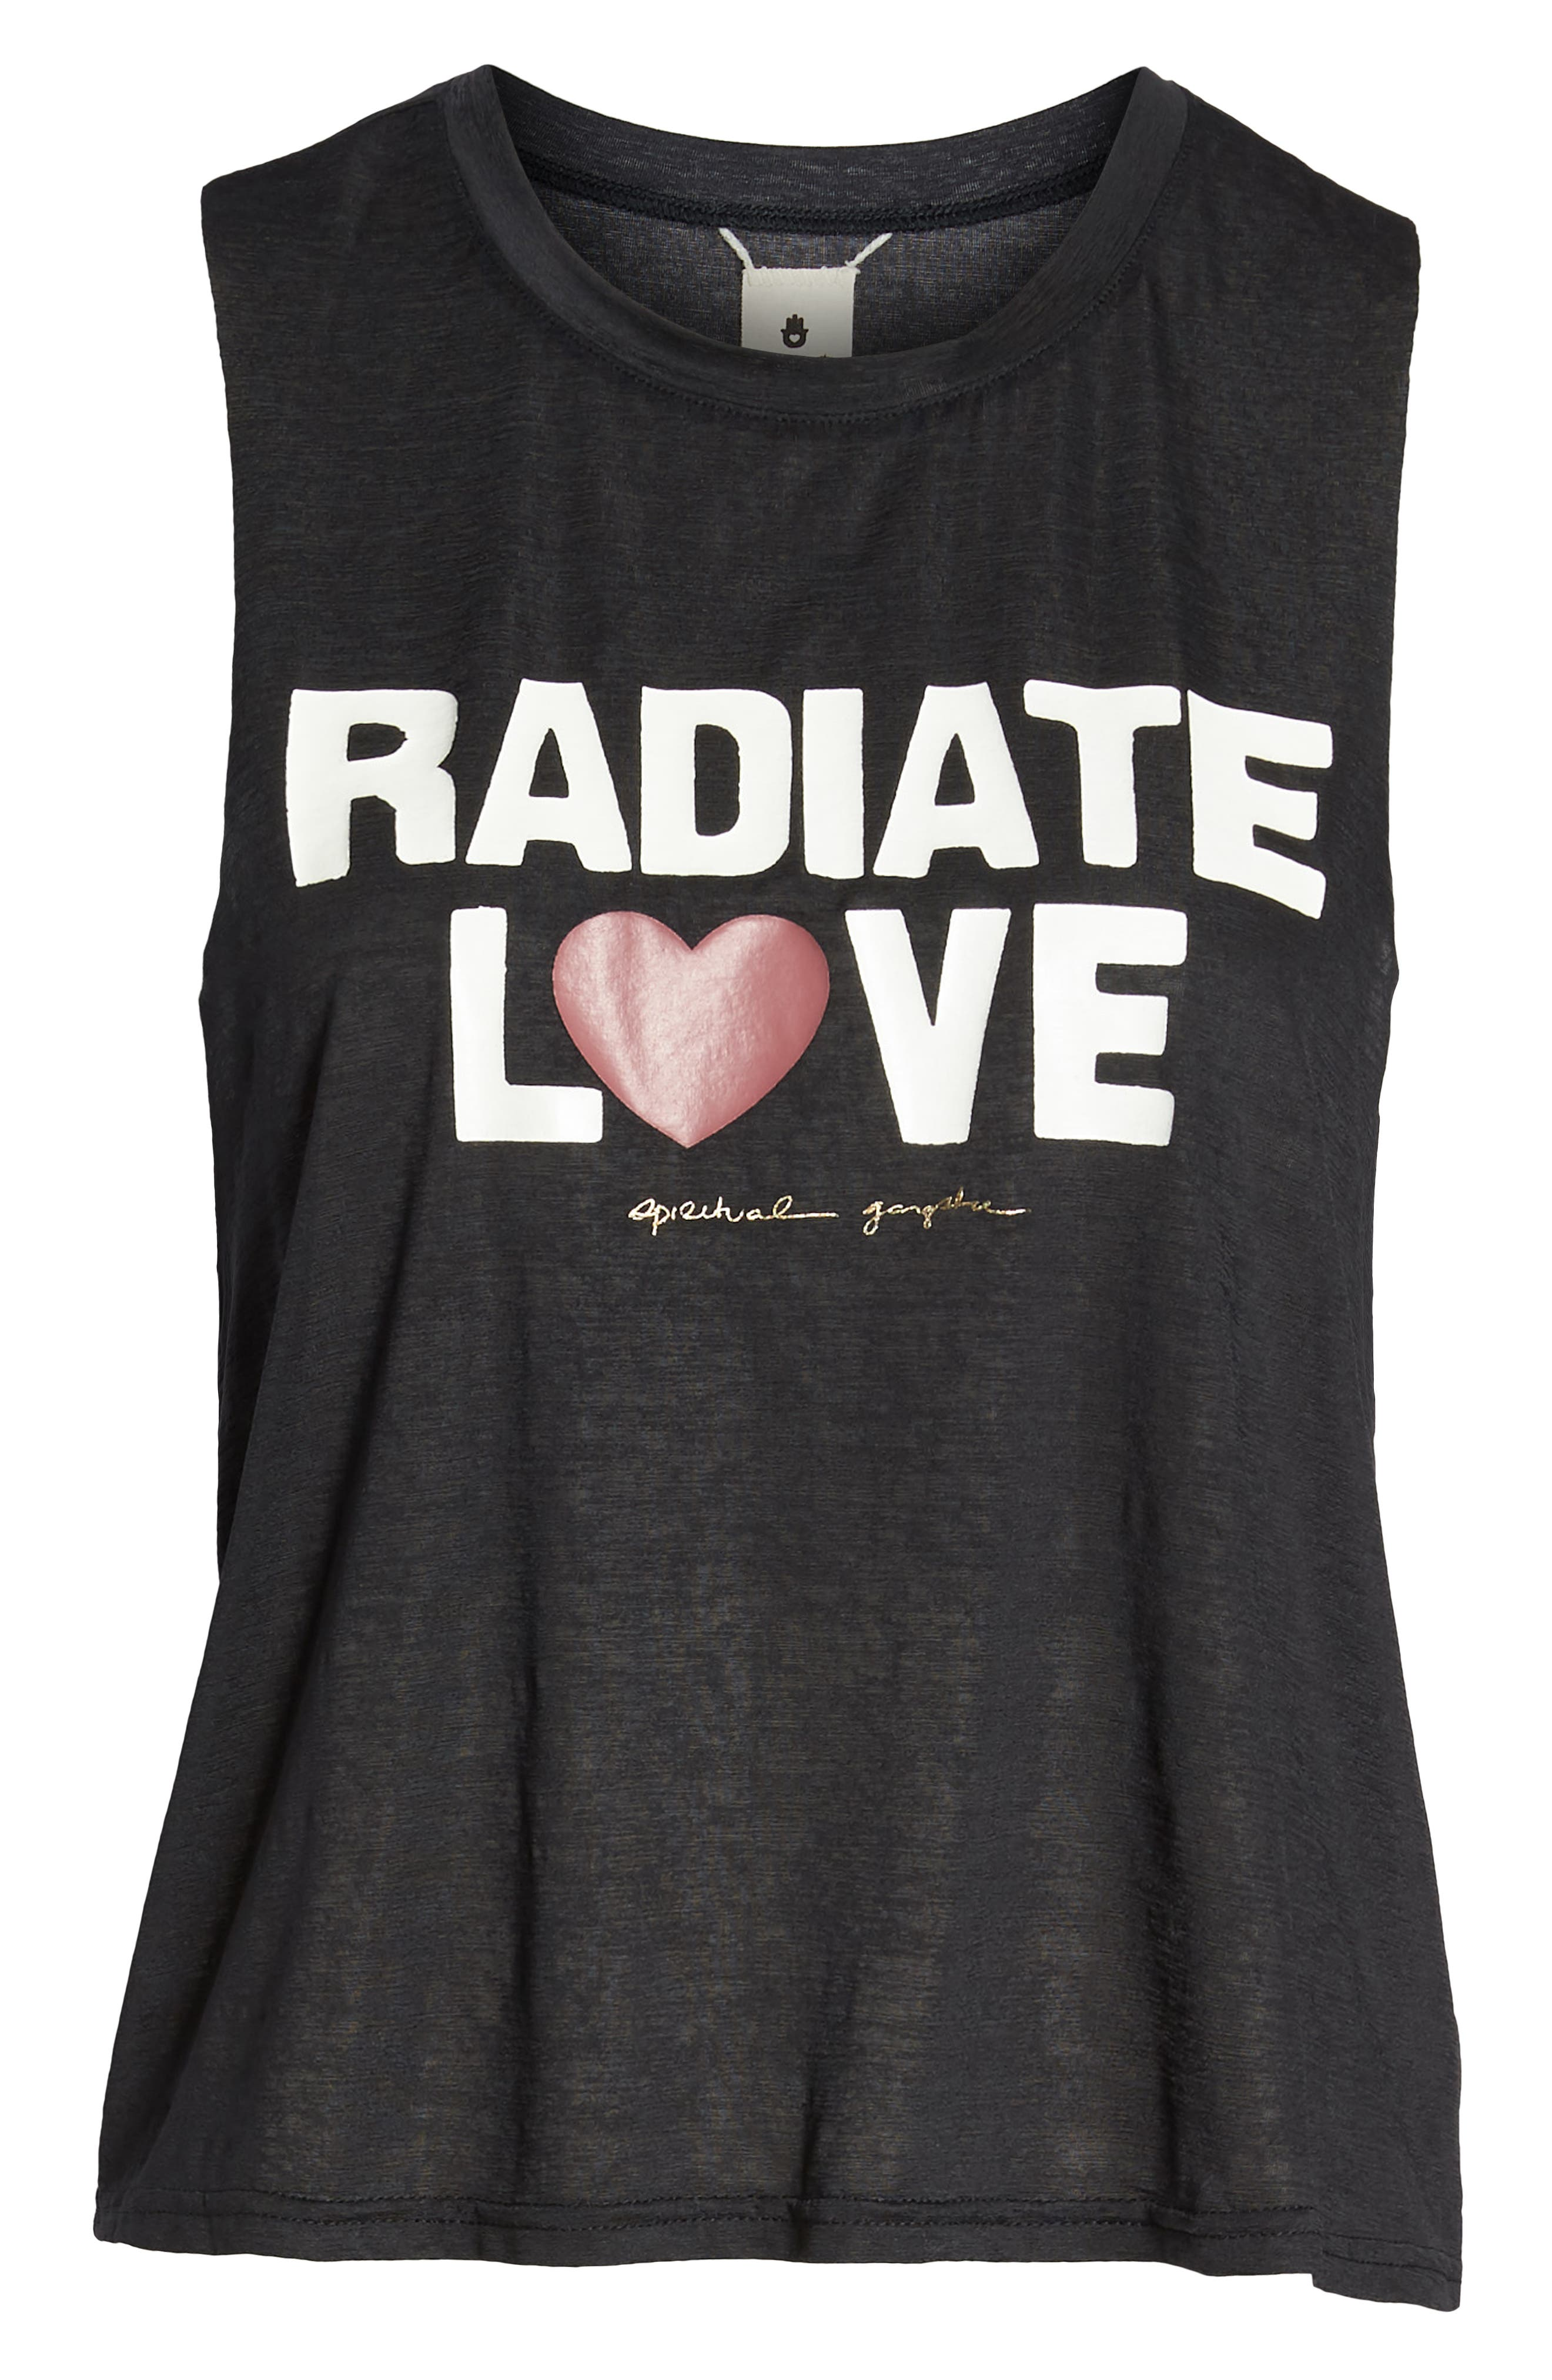 Radiate Love Crop Tank Top,                             Alternate thumbnail 7, color,                             003